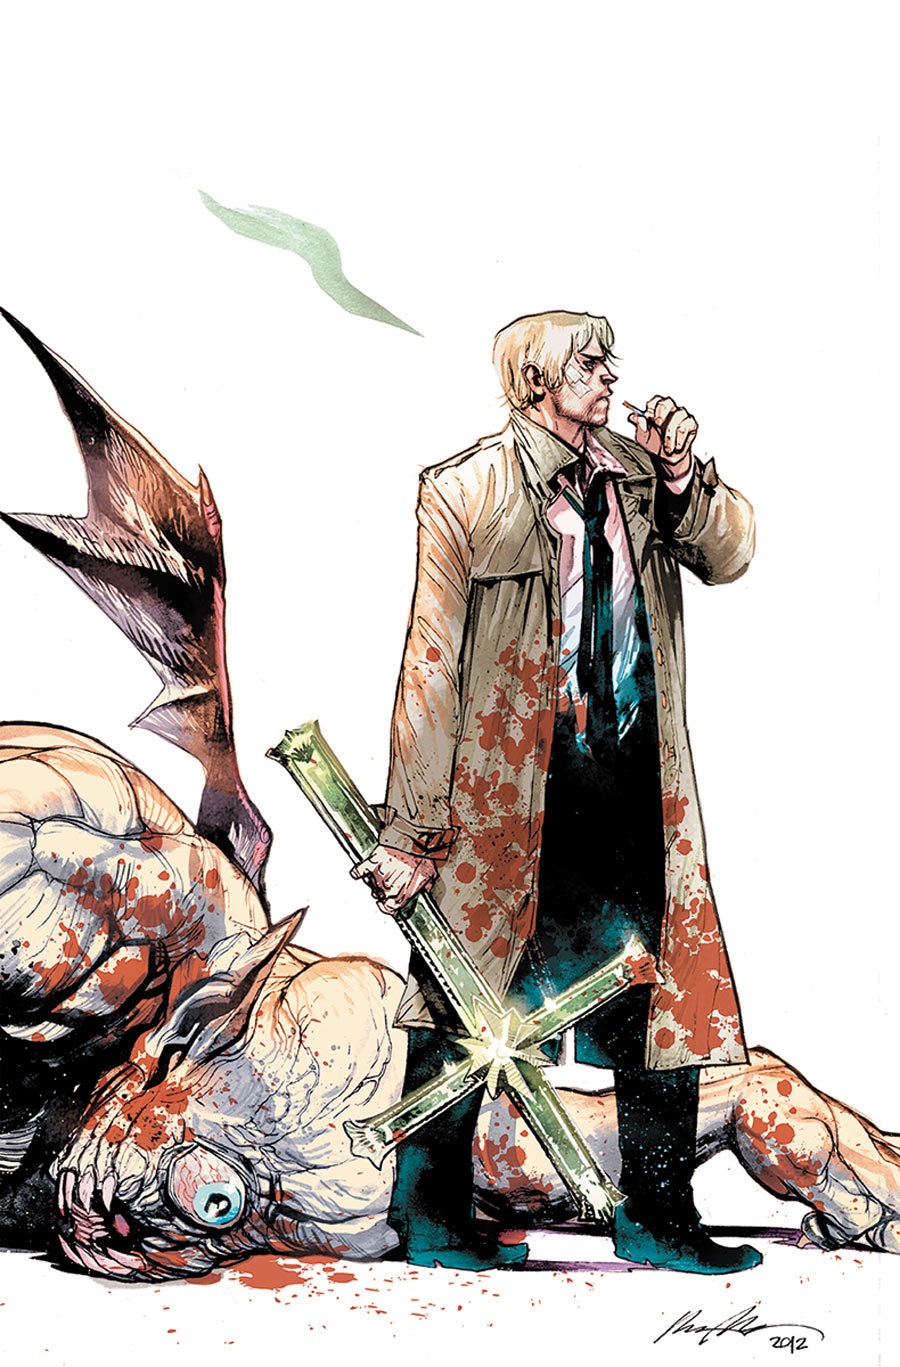 DC comics for July 2013: this is the cover for Hellblazer Vol. #6: Bloodlines, drawn by Rafael Alburquerque, with an appropriately cheeky visual for the nonchalant John Constantine.